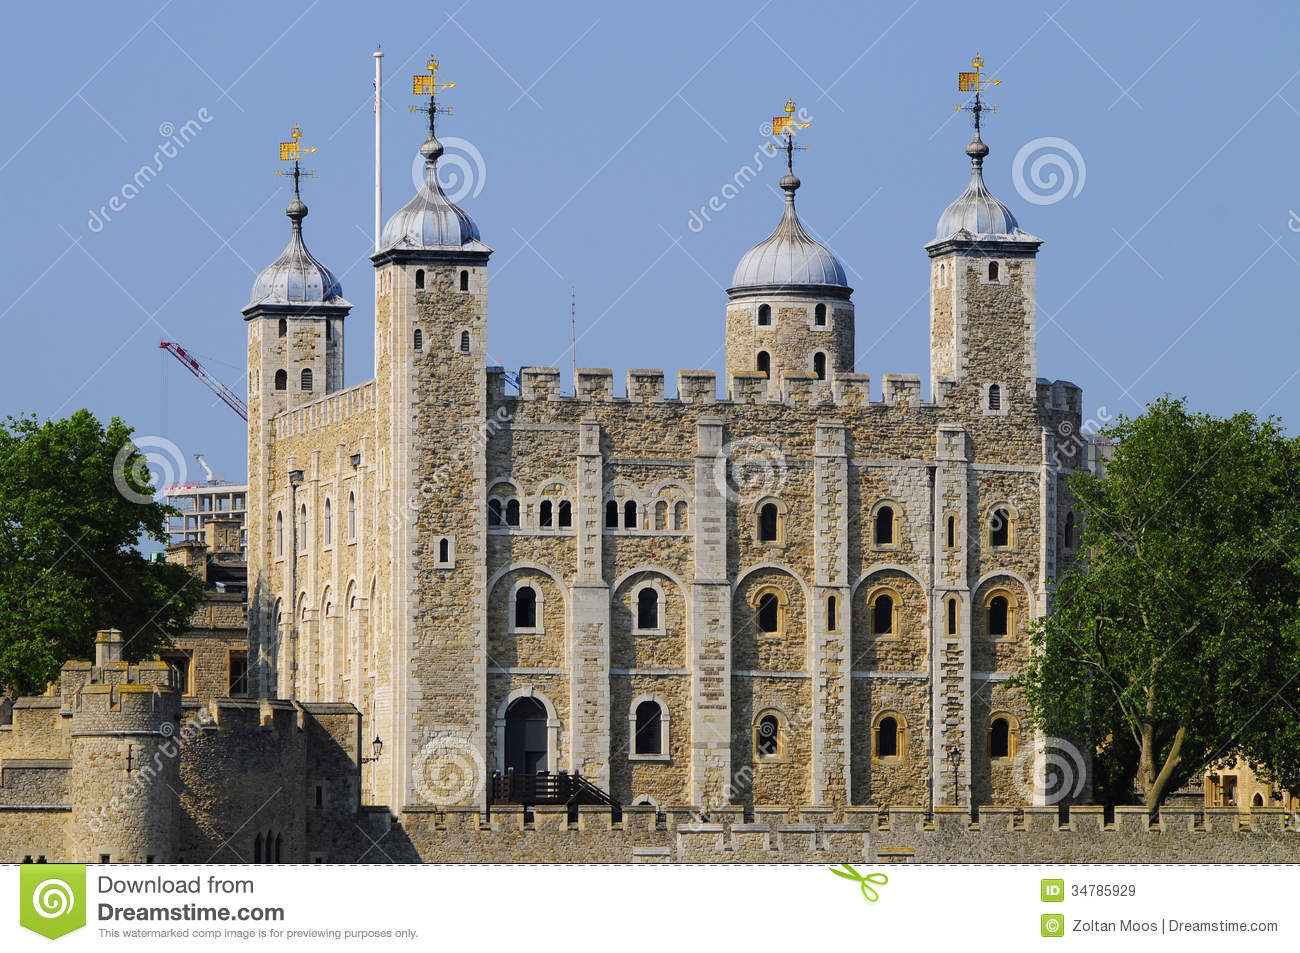 Tower Of London Royalty Free Stock Images.